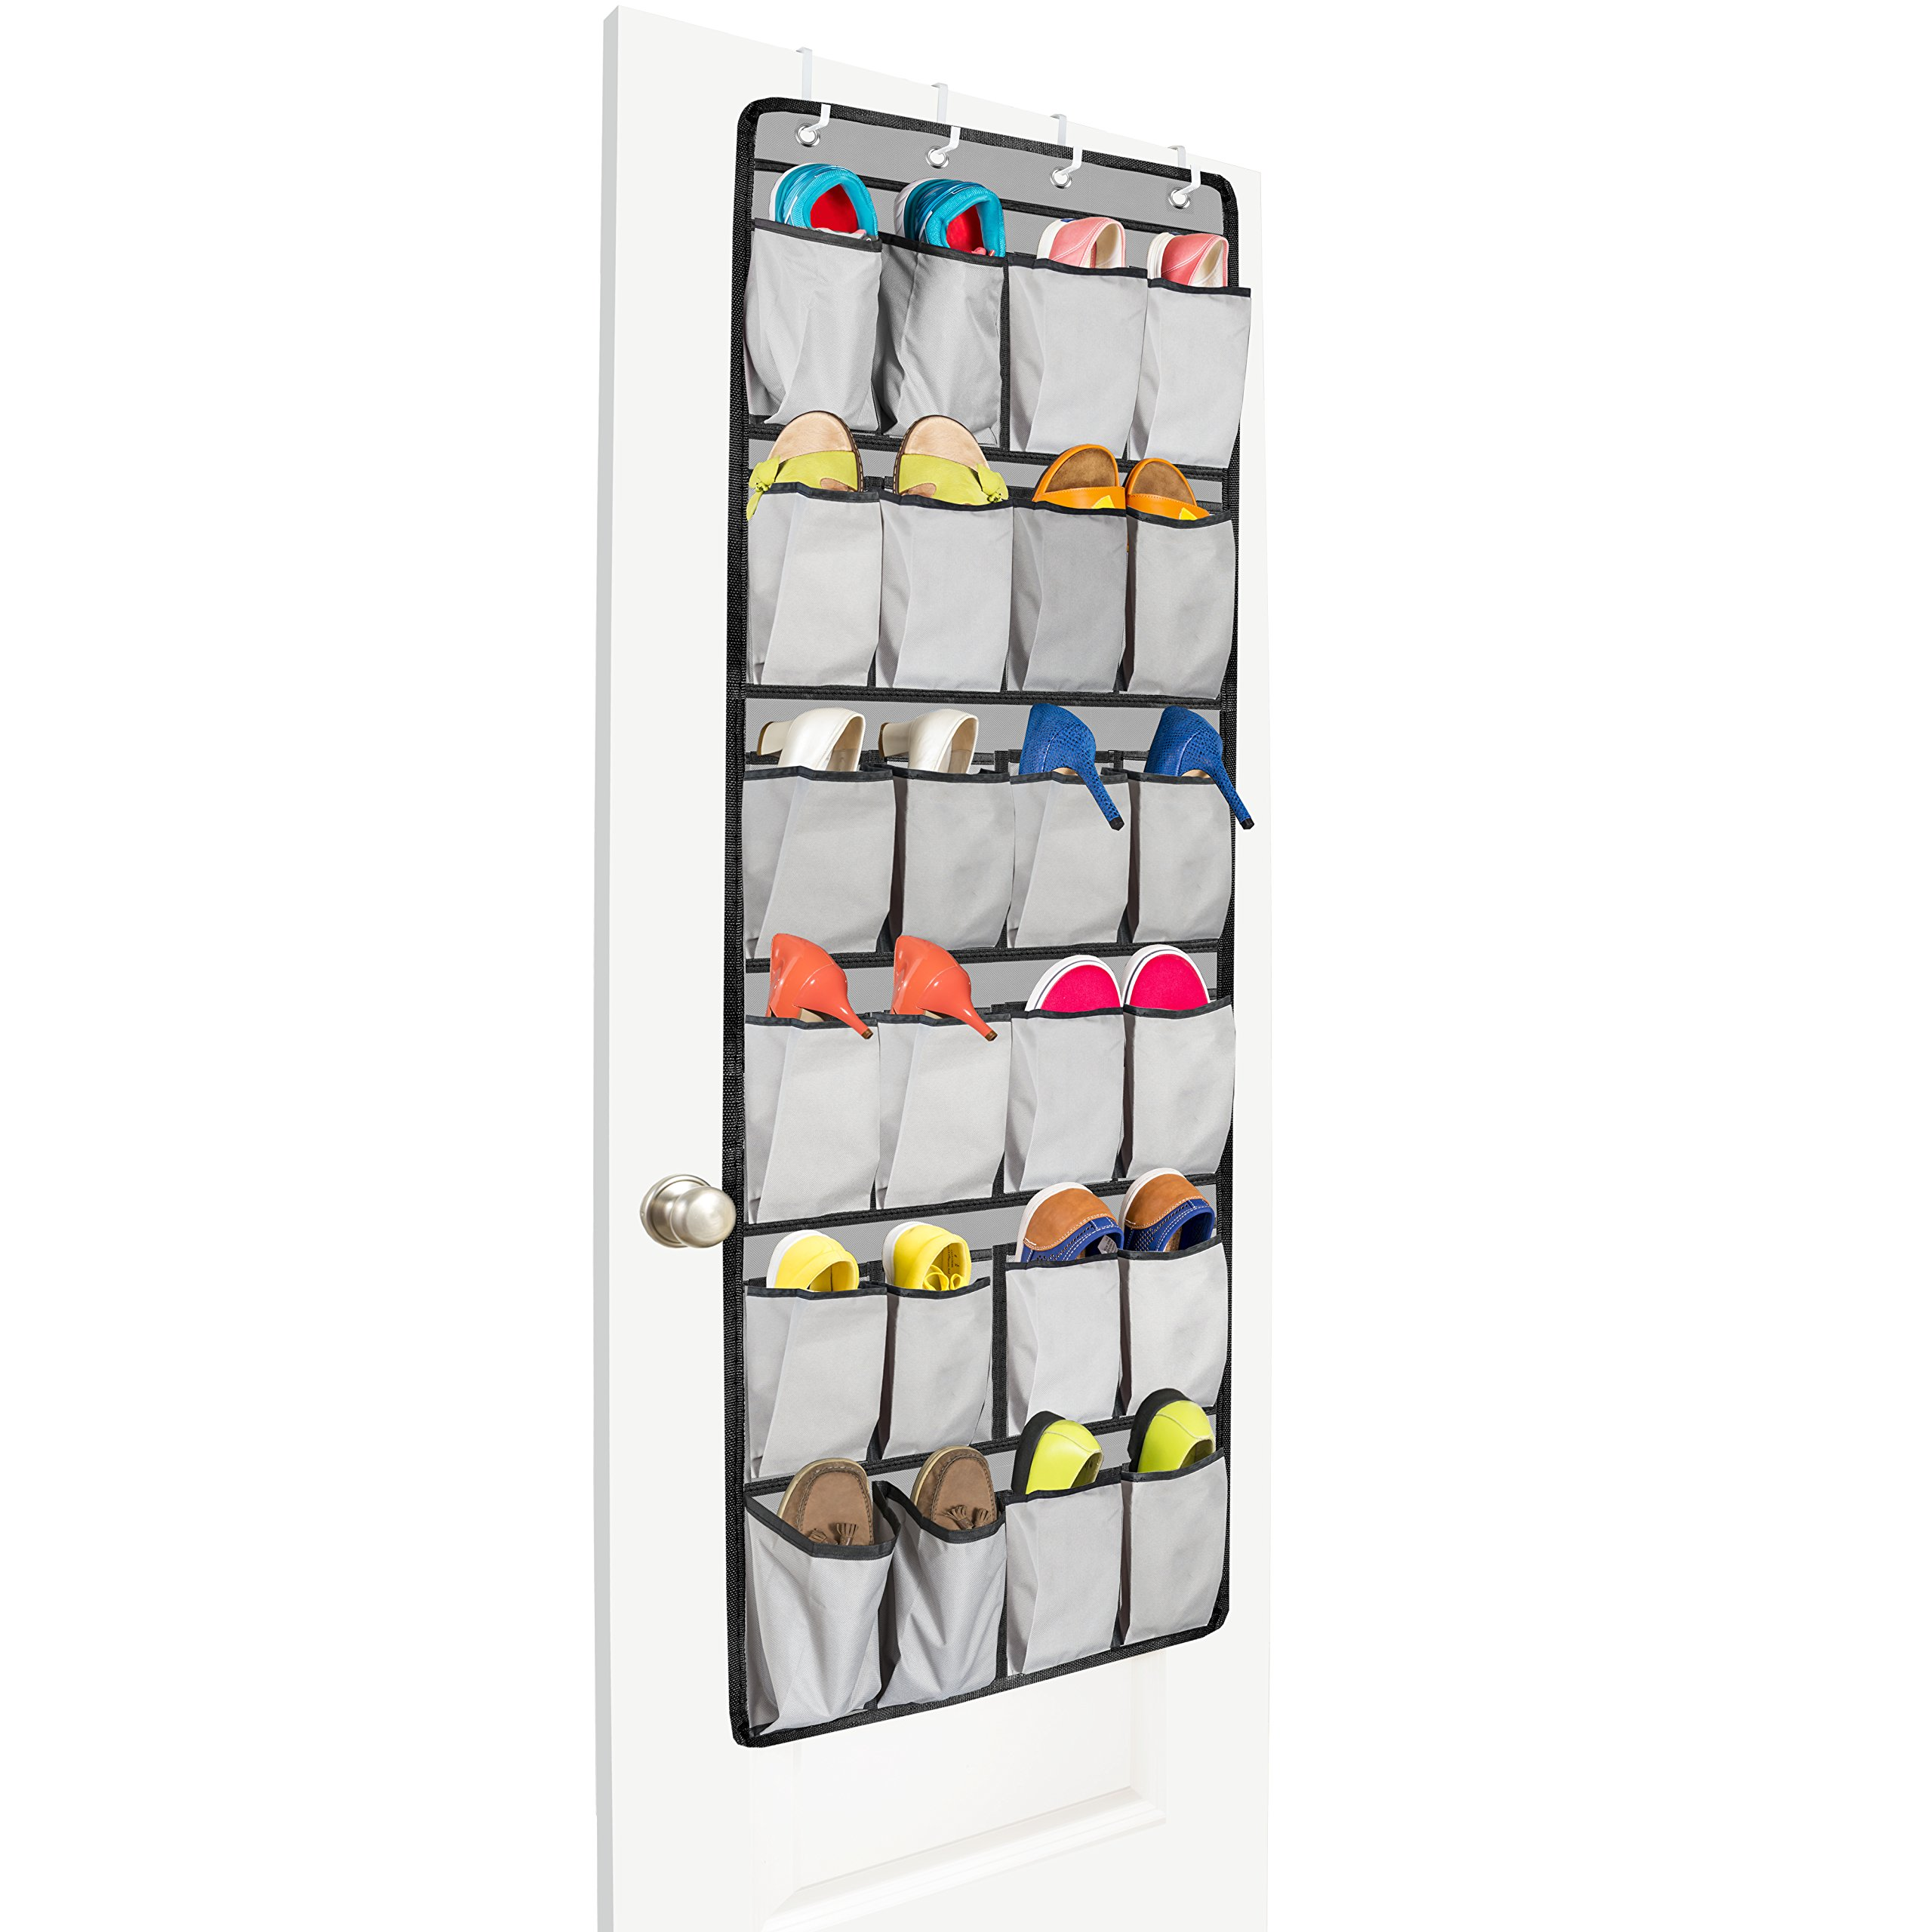 Over The Door Shoe Organizer From Unjumbly, Most Durable